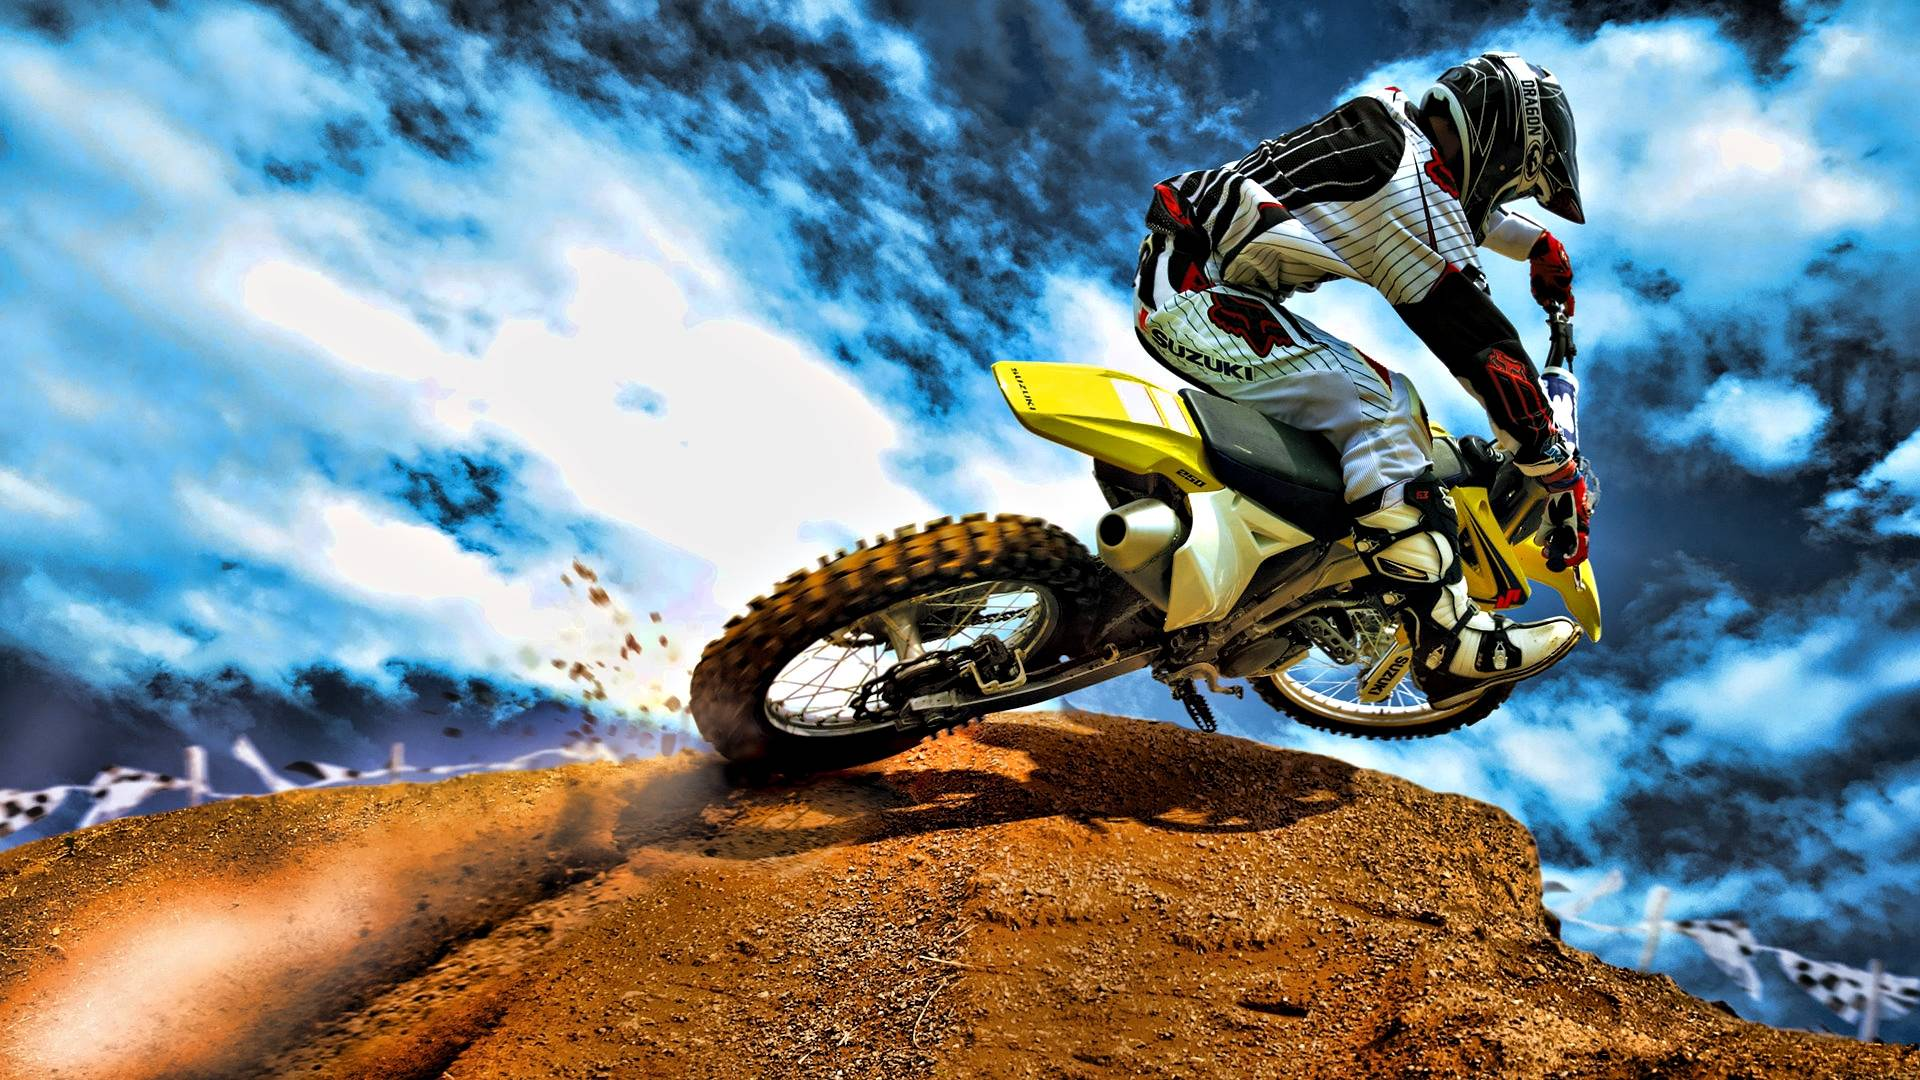 Motocross Wallpapers Wallpaper Cave HD Wallpapers Download Free Images Wallpaper [1000image.com]